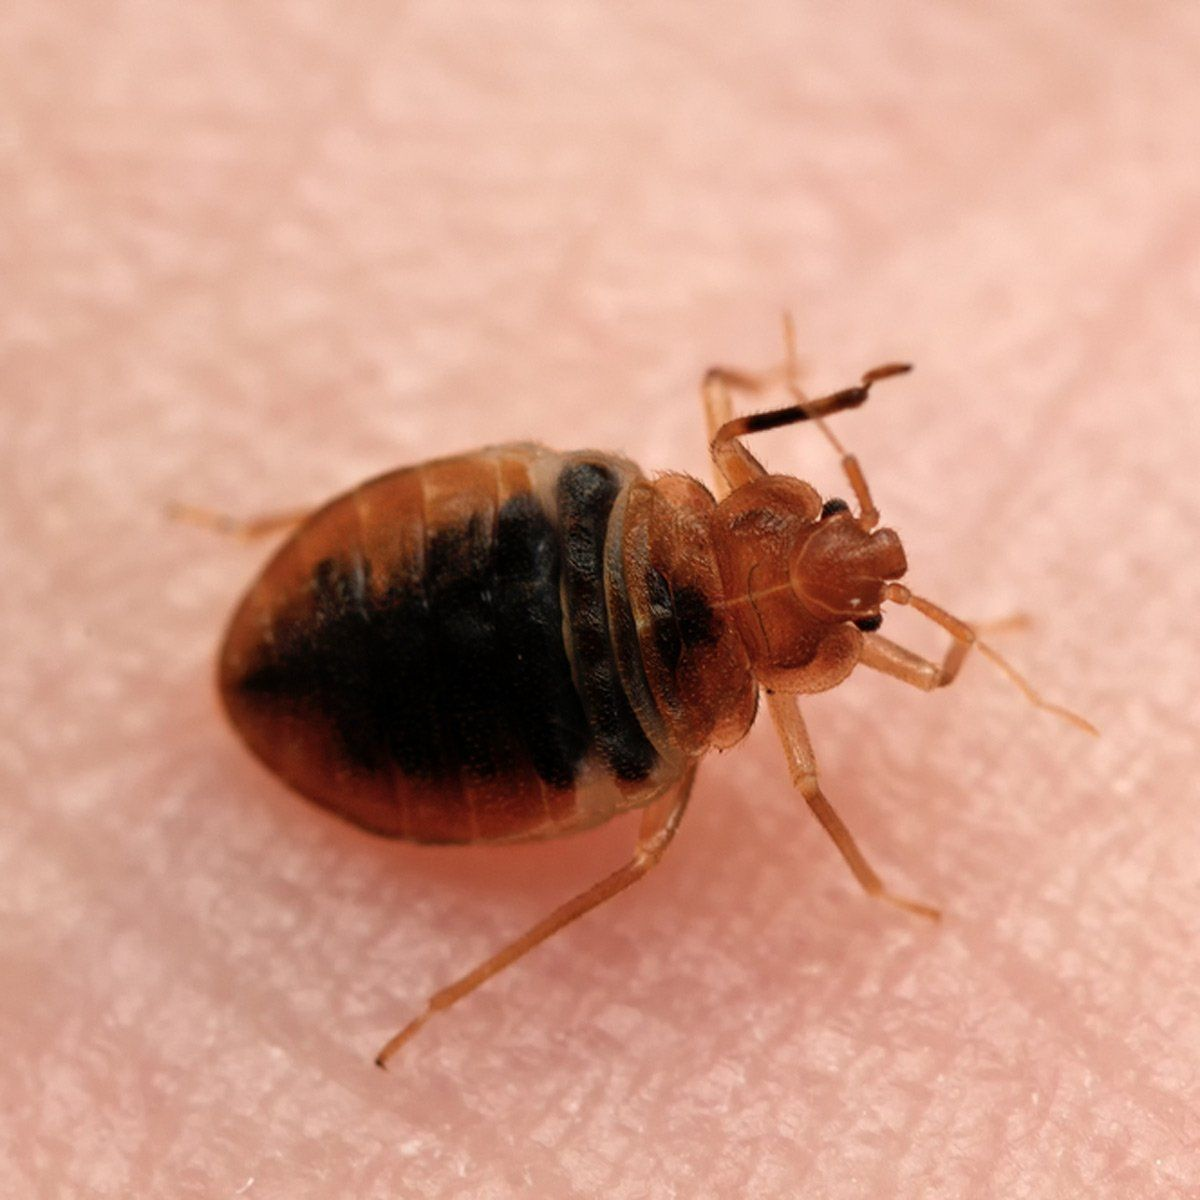 How to Get Rid of Bed Bugs A DIY Guide in 2020 Bed bugs